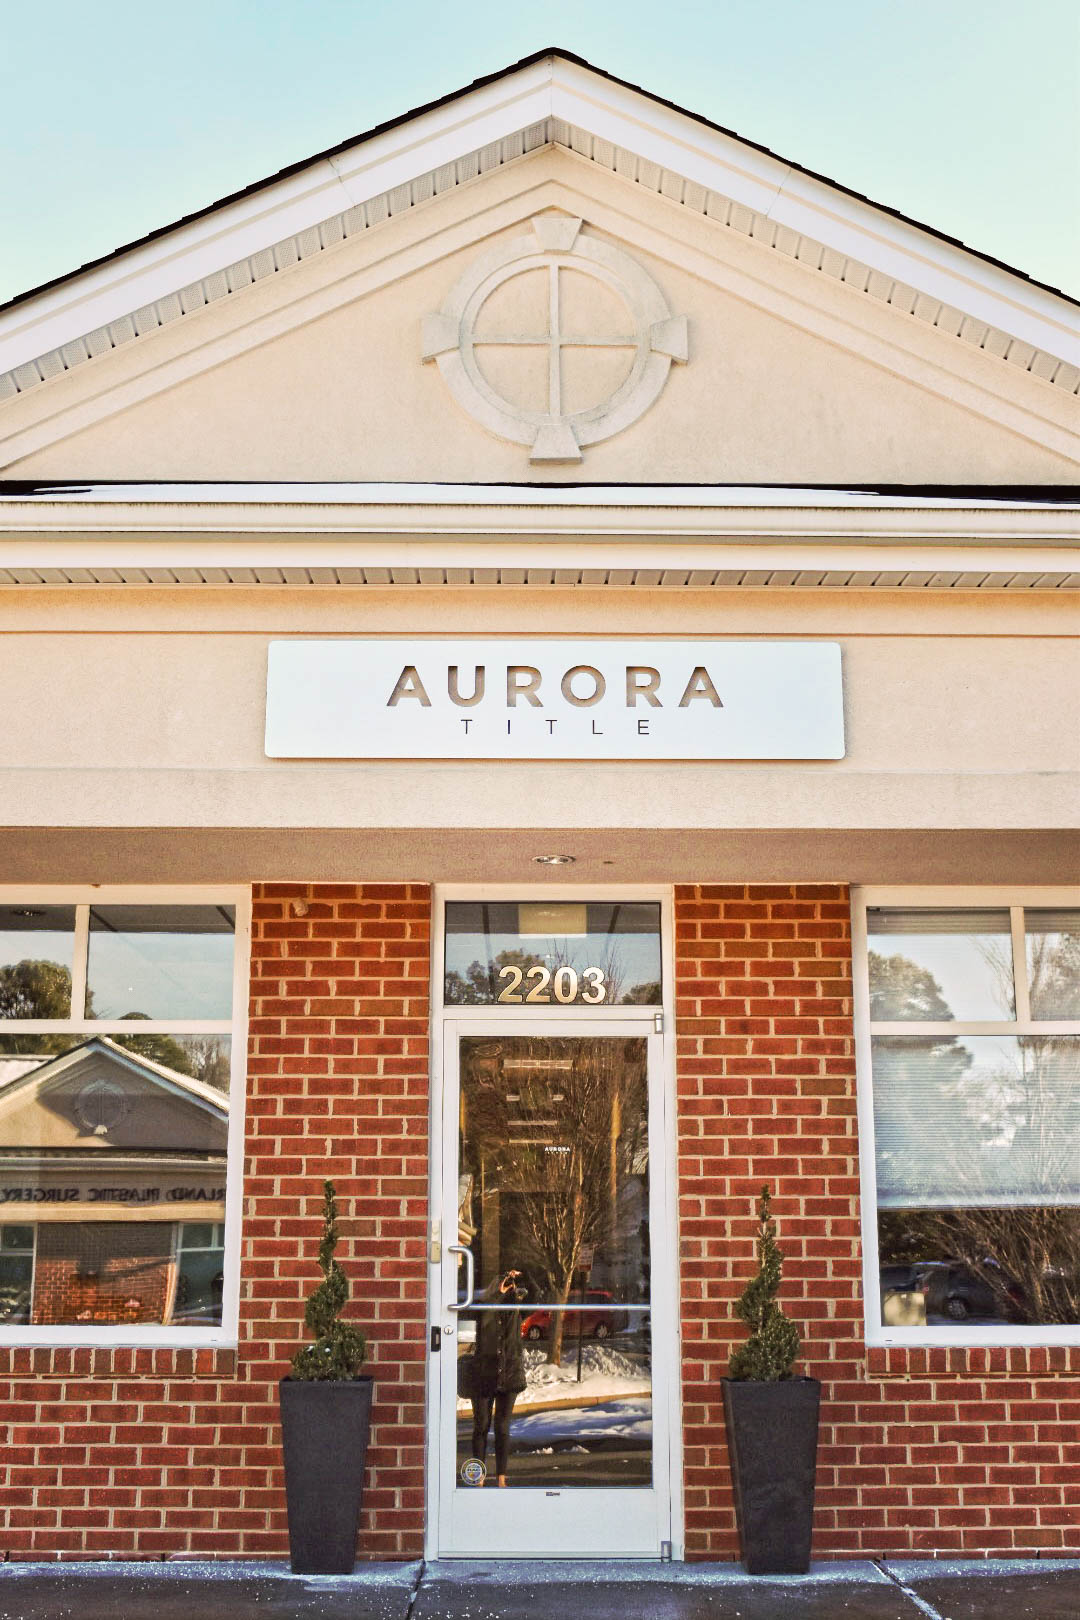 metal exterior sign that says Aurora Title on a brick building